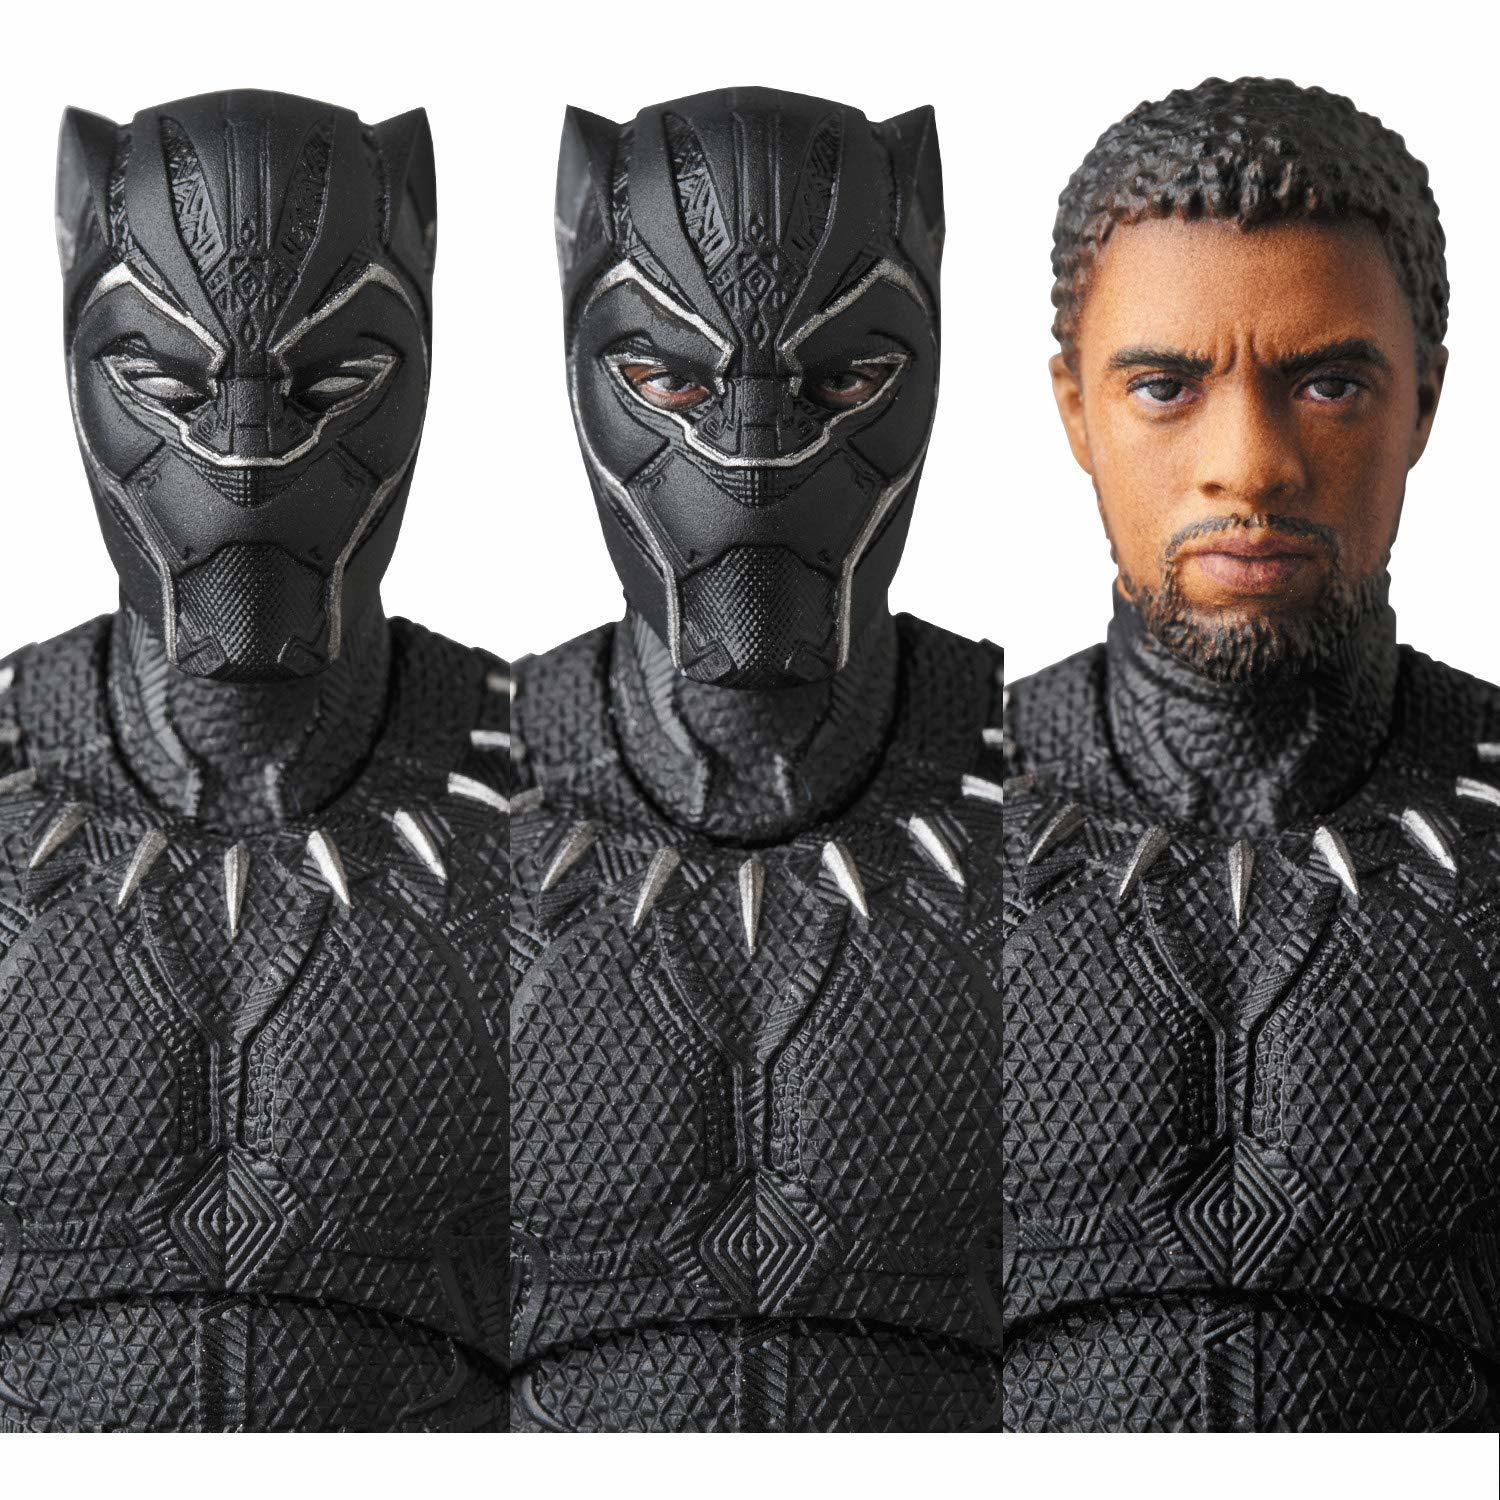 MAFEX Black Panther - Action Figure image